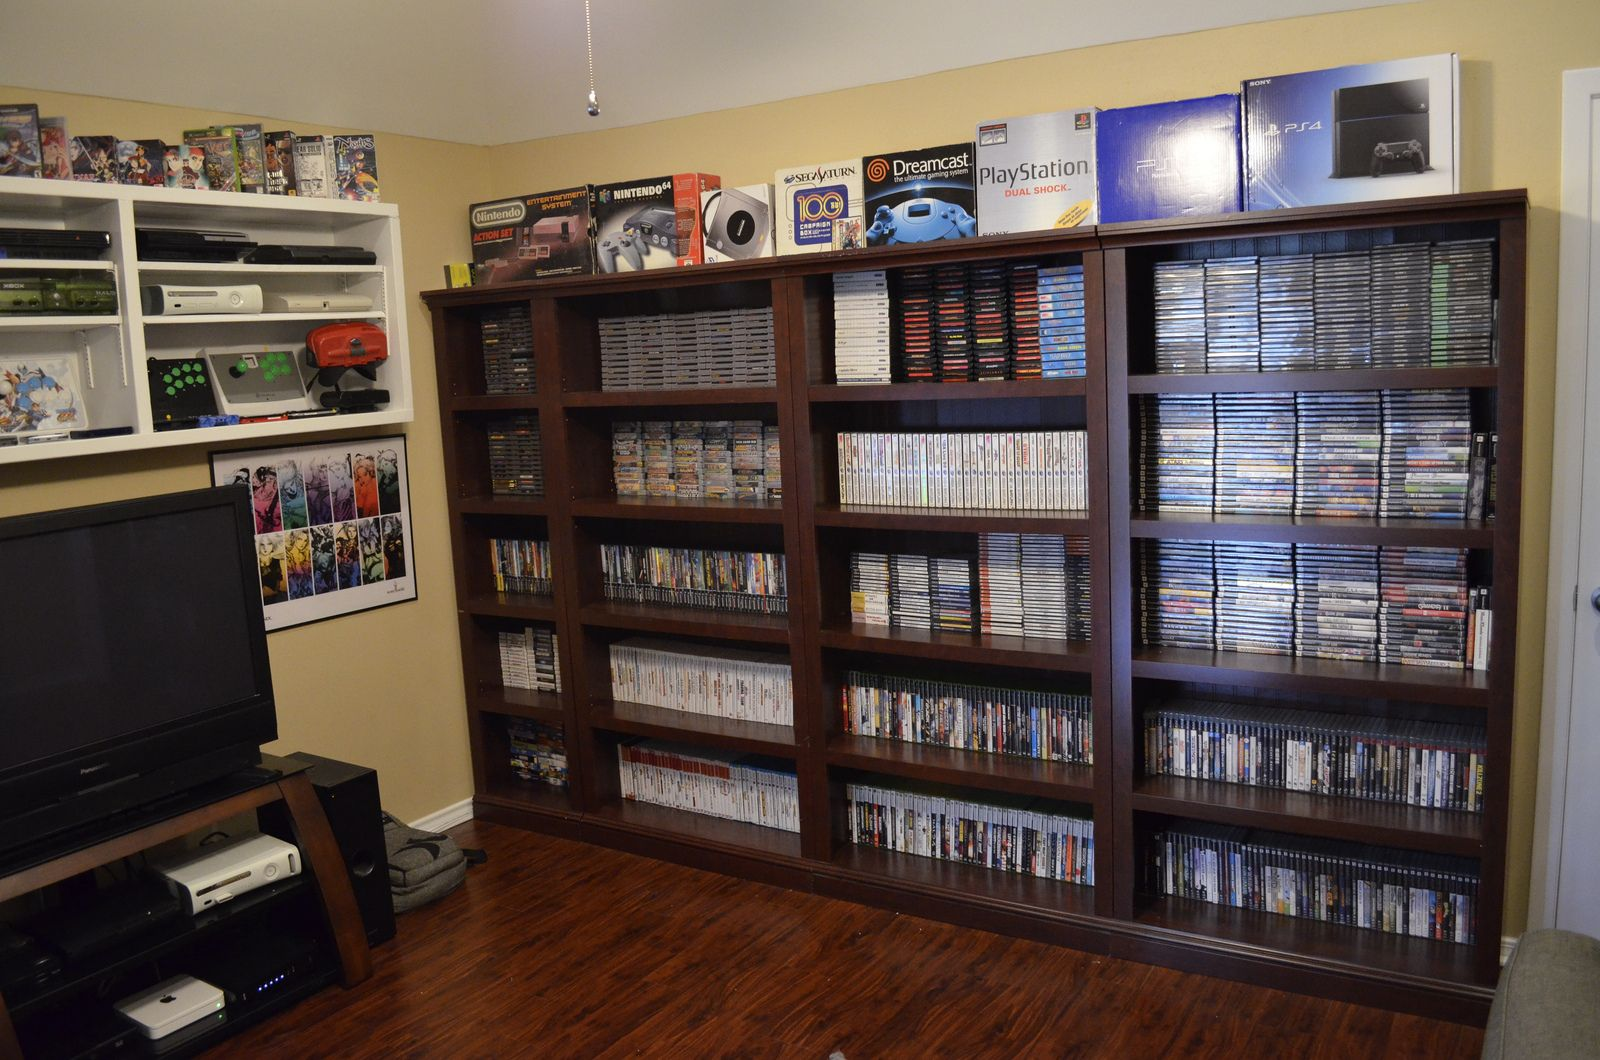 Exceptional Nerd Cave, Man Cave, Gameroom Ideas, Basement Ideas, Gamer Room, Game  Storage, Storage Ideas, Gaming Rooms, Gaming Setup